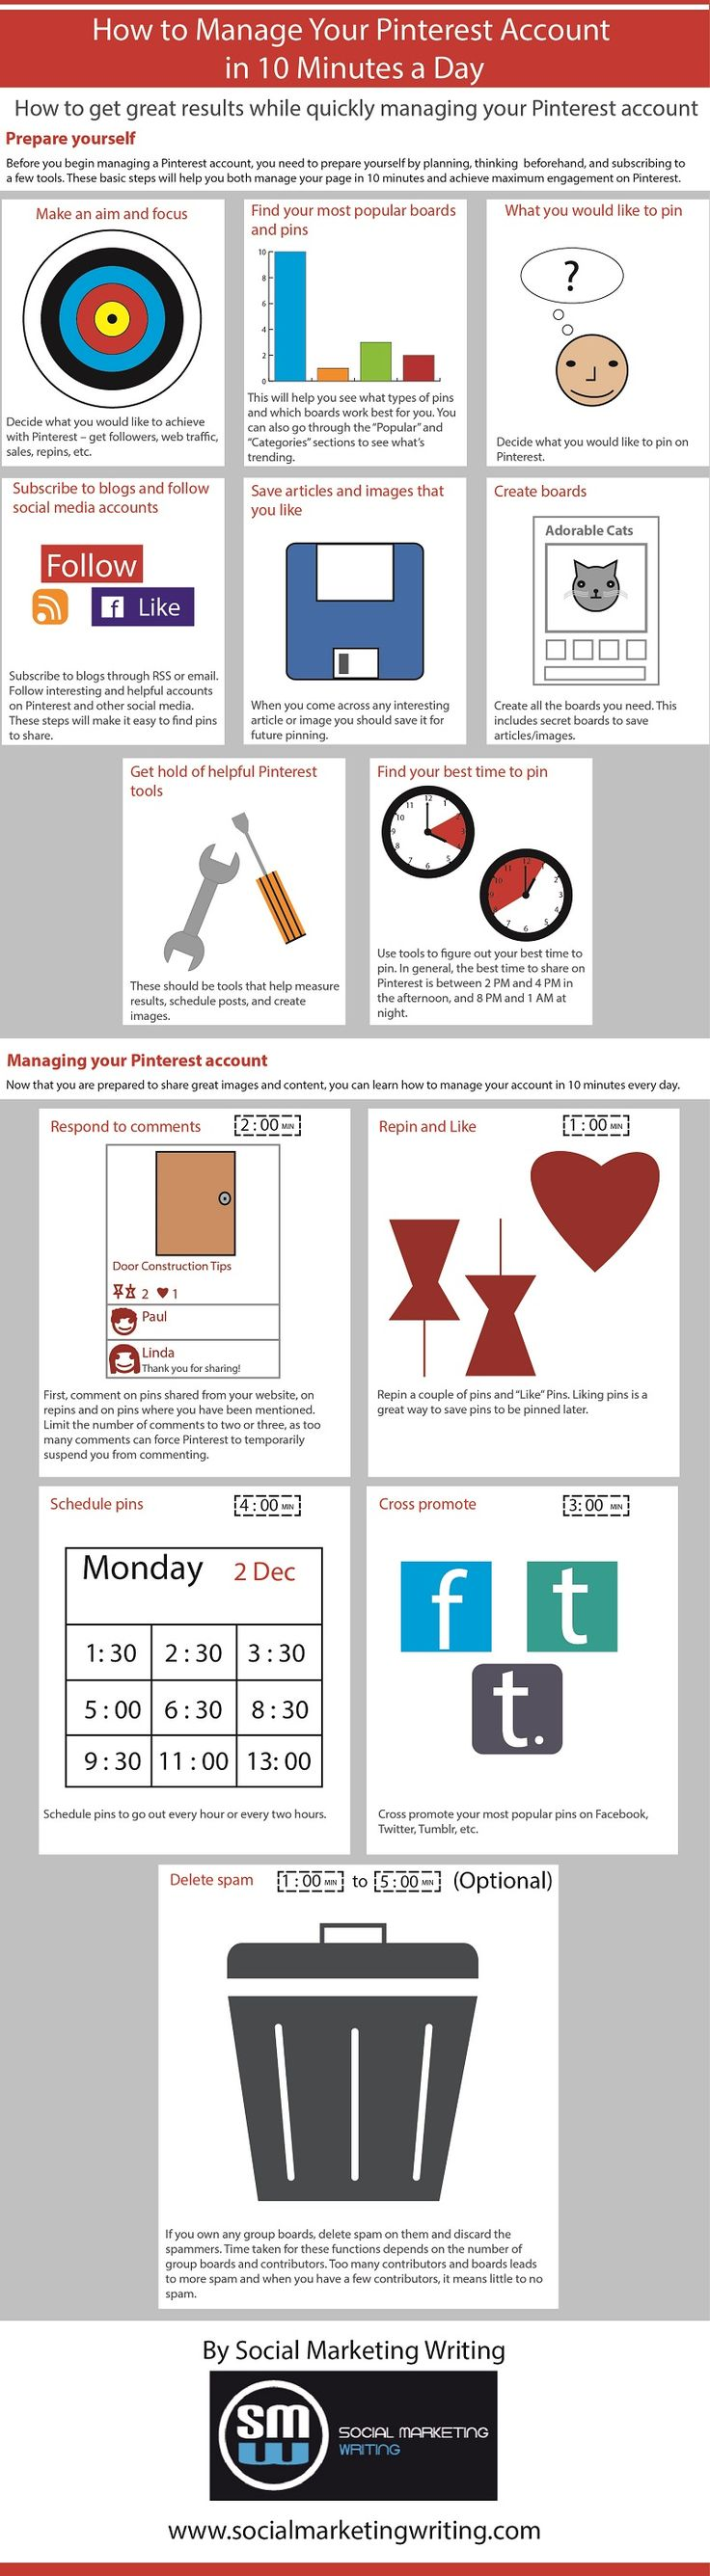 How to Manage Your Pinterest Account in 10 Minutes a Day http://socialmarketingwriting.com/how-to-manage-your-pinterest-account-in-10-minutes-a-day/